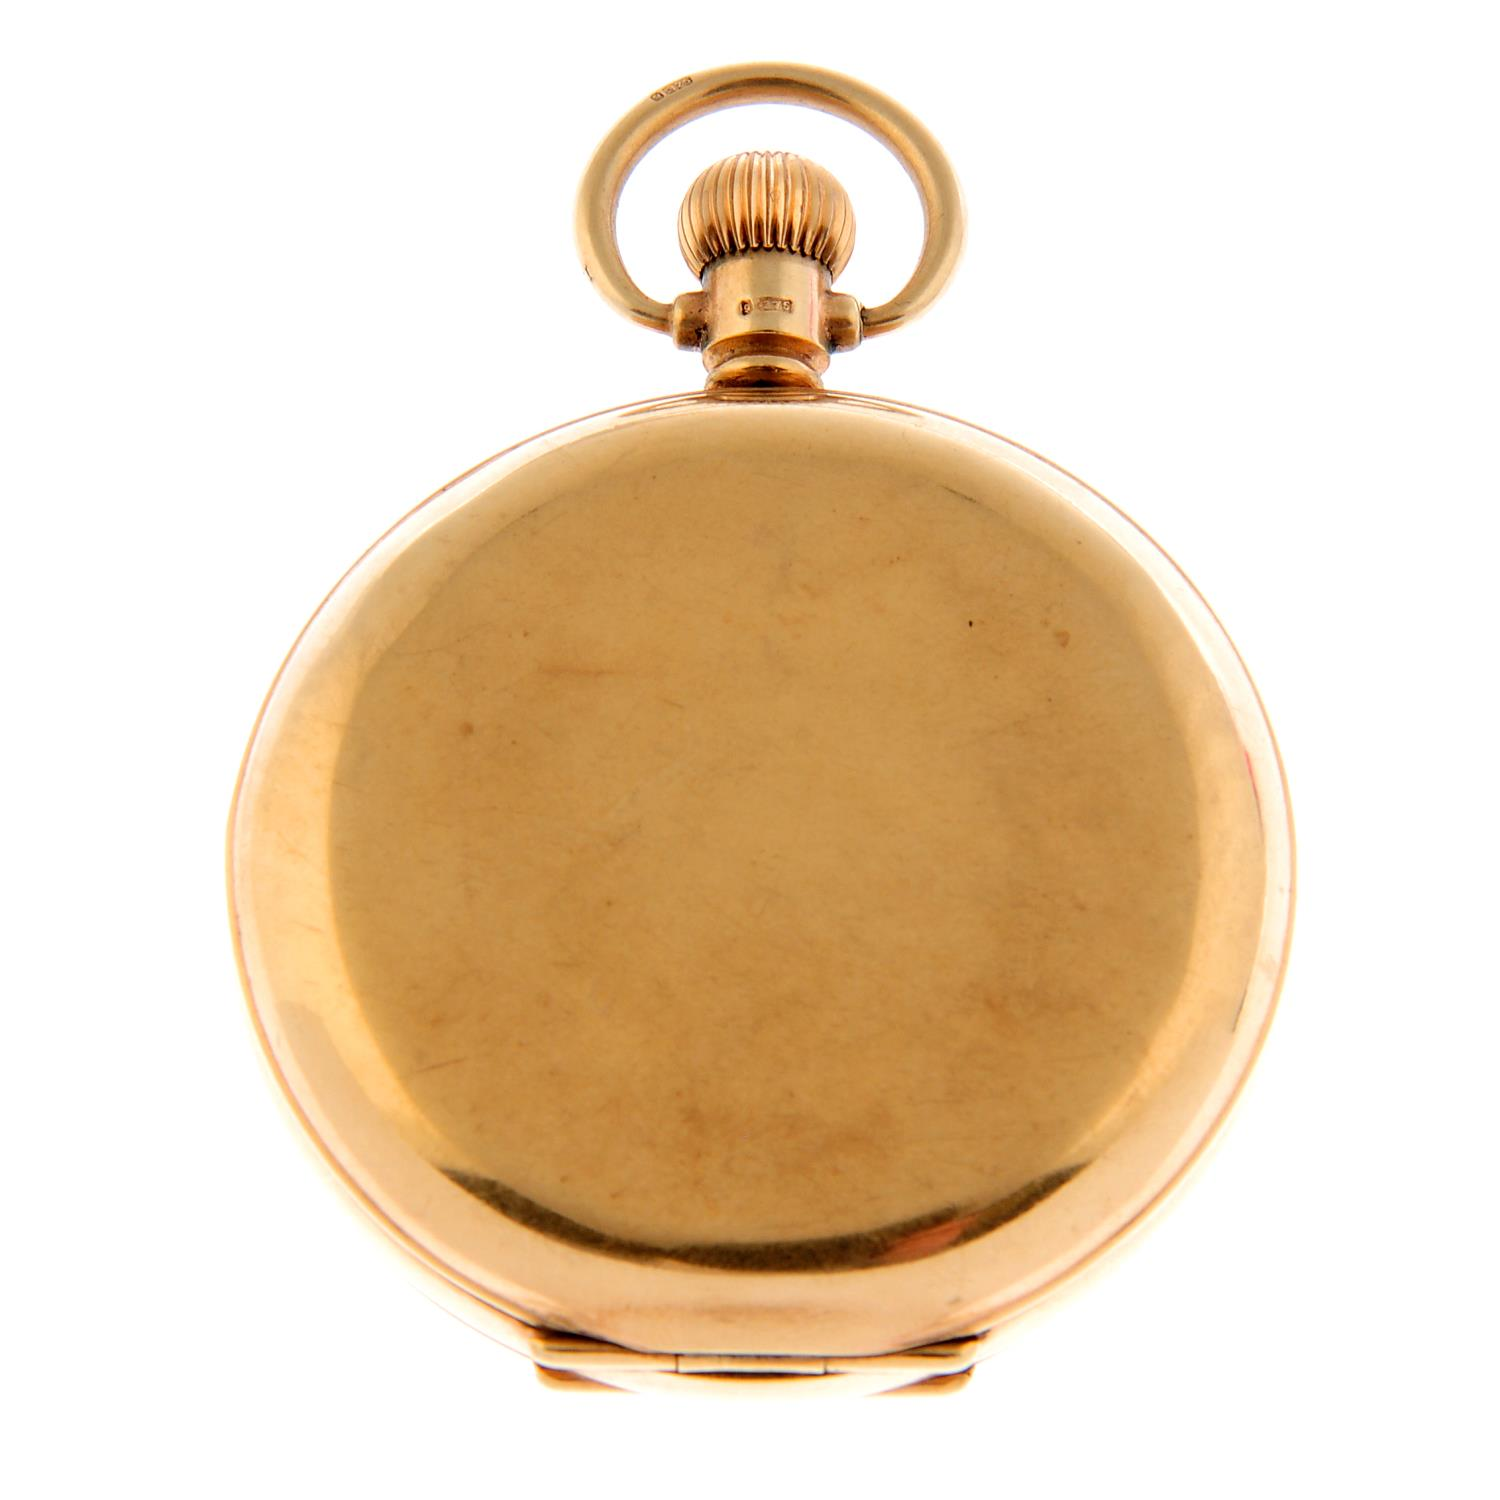 A full hunter pocket watch by Federal. - Image 2 of 4